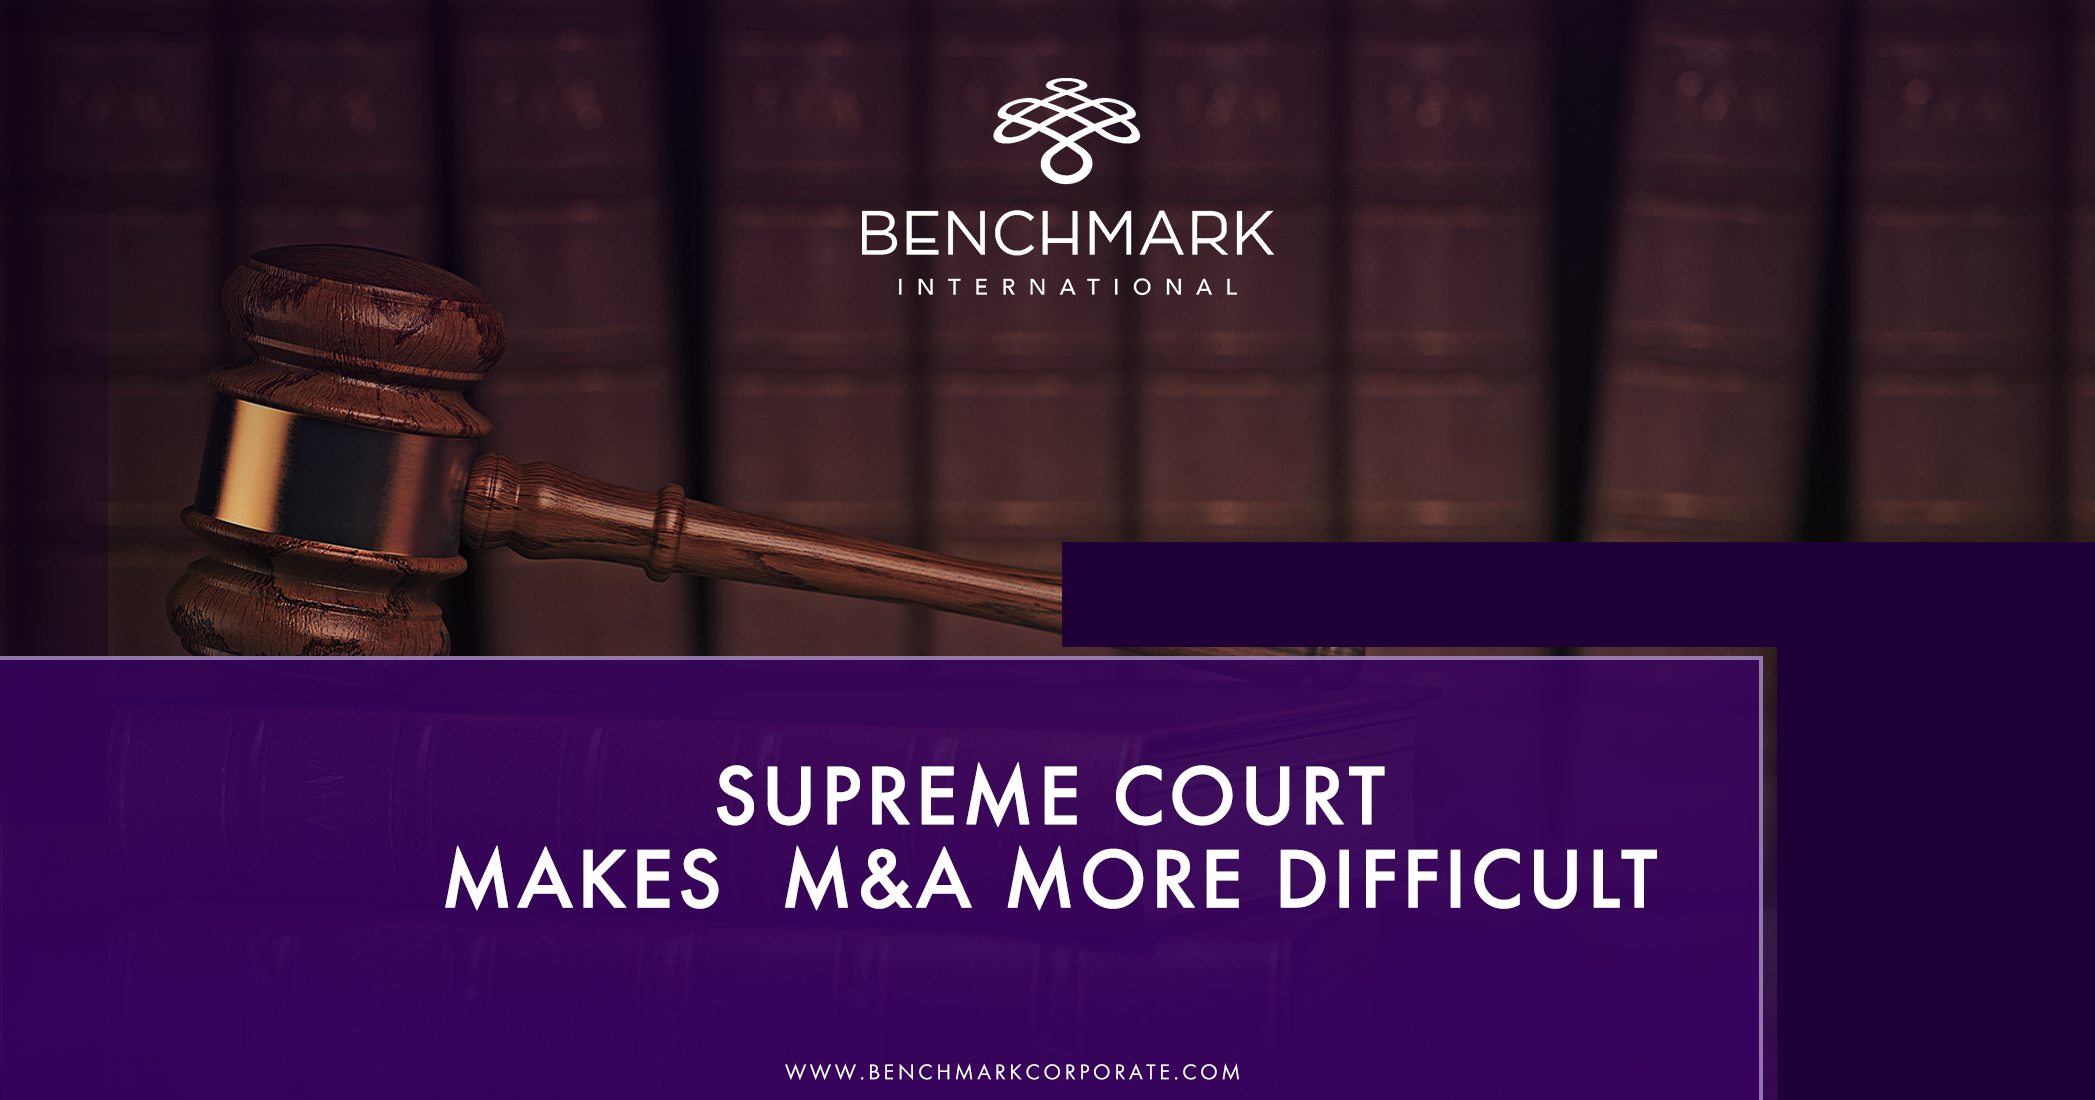 Supreme Court Makes M&A More Difficult